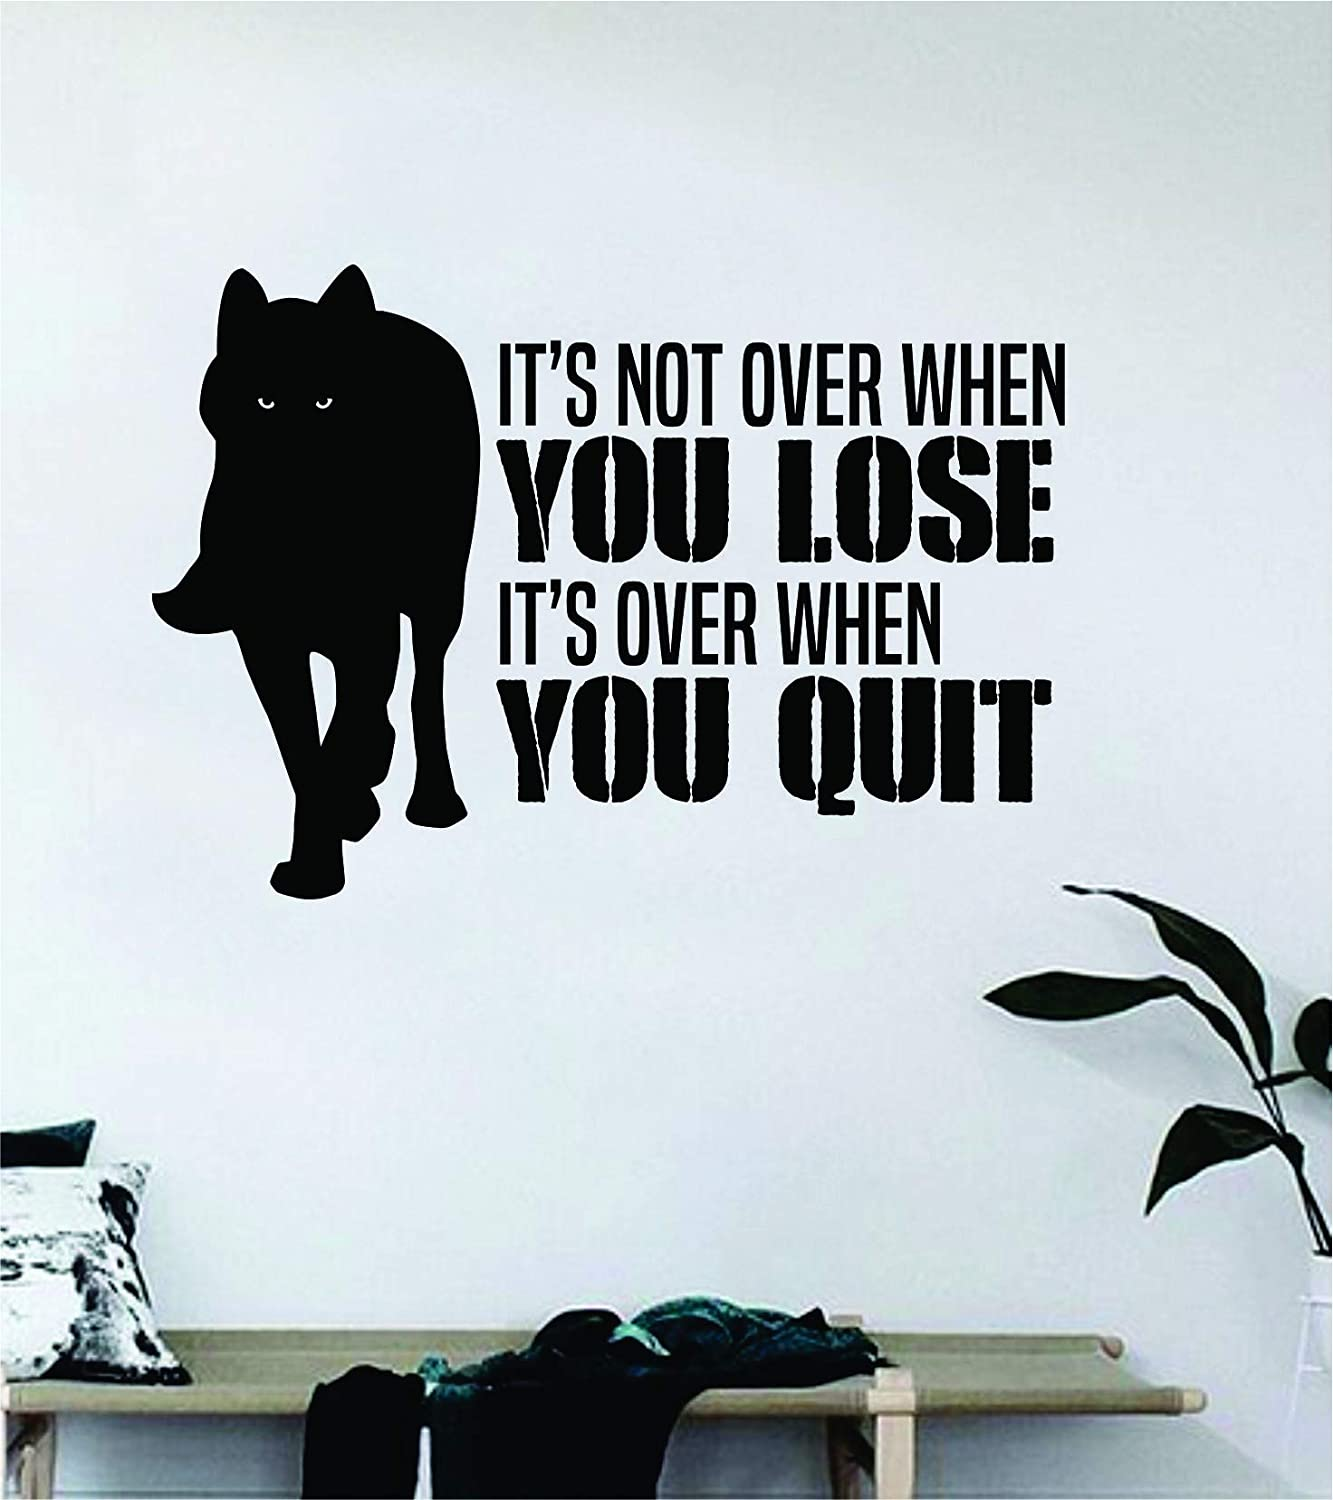 It's Over When You Quit Wolf Wall Decal Sticker Vinyl Art Bedroom Living Room Decor Decoration Teen Quote Inspirational Boy Girl Motivational Work Out Gym Gainz Strong Run Cardio Squat Beast Animal